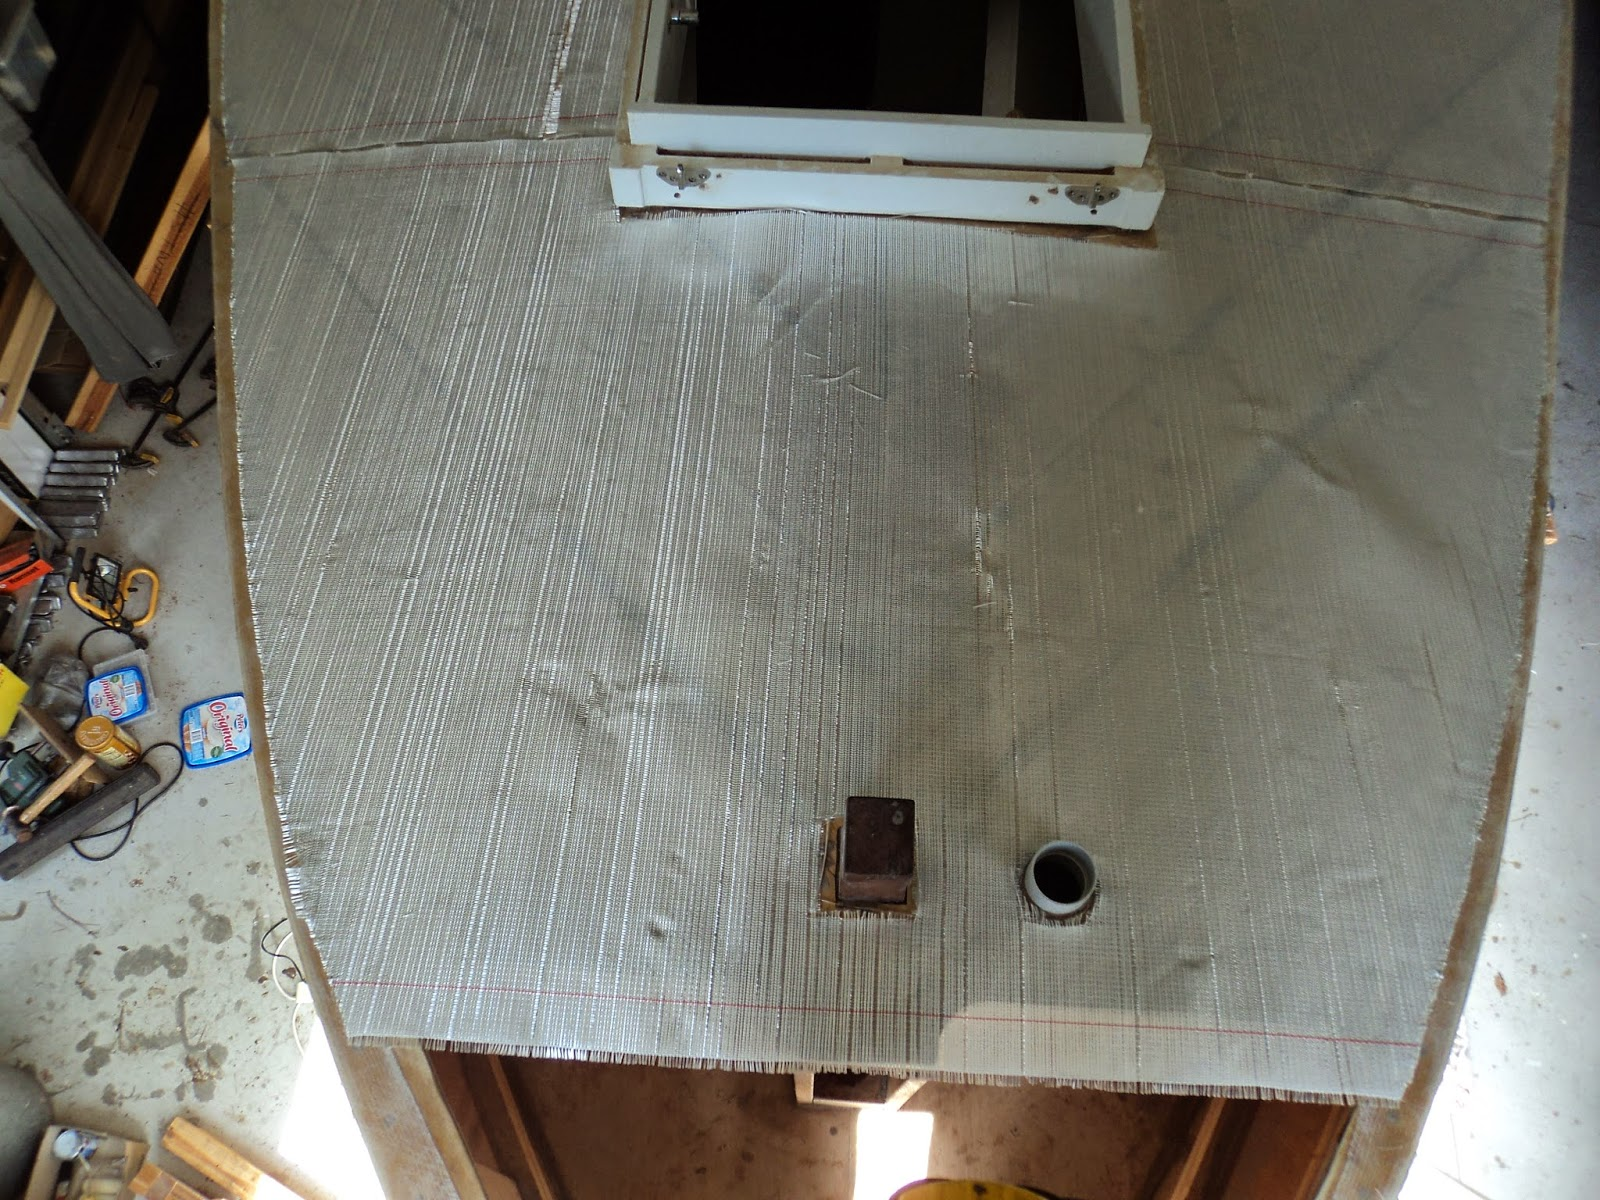 glass cloth i used for the hull and cut pieces to go across the front deck below is standing in the anchor well looking down at the very front deck